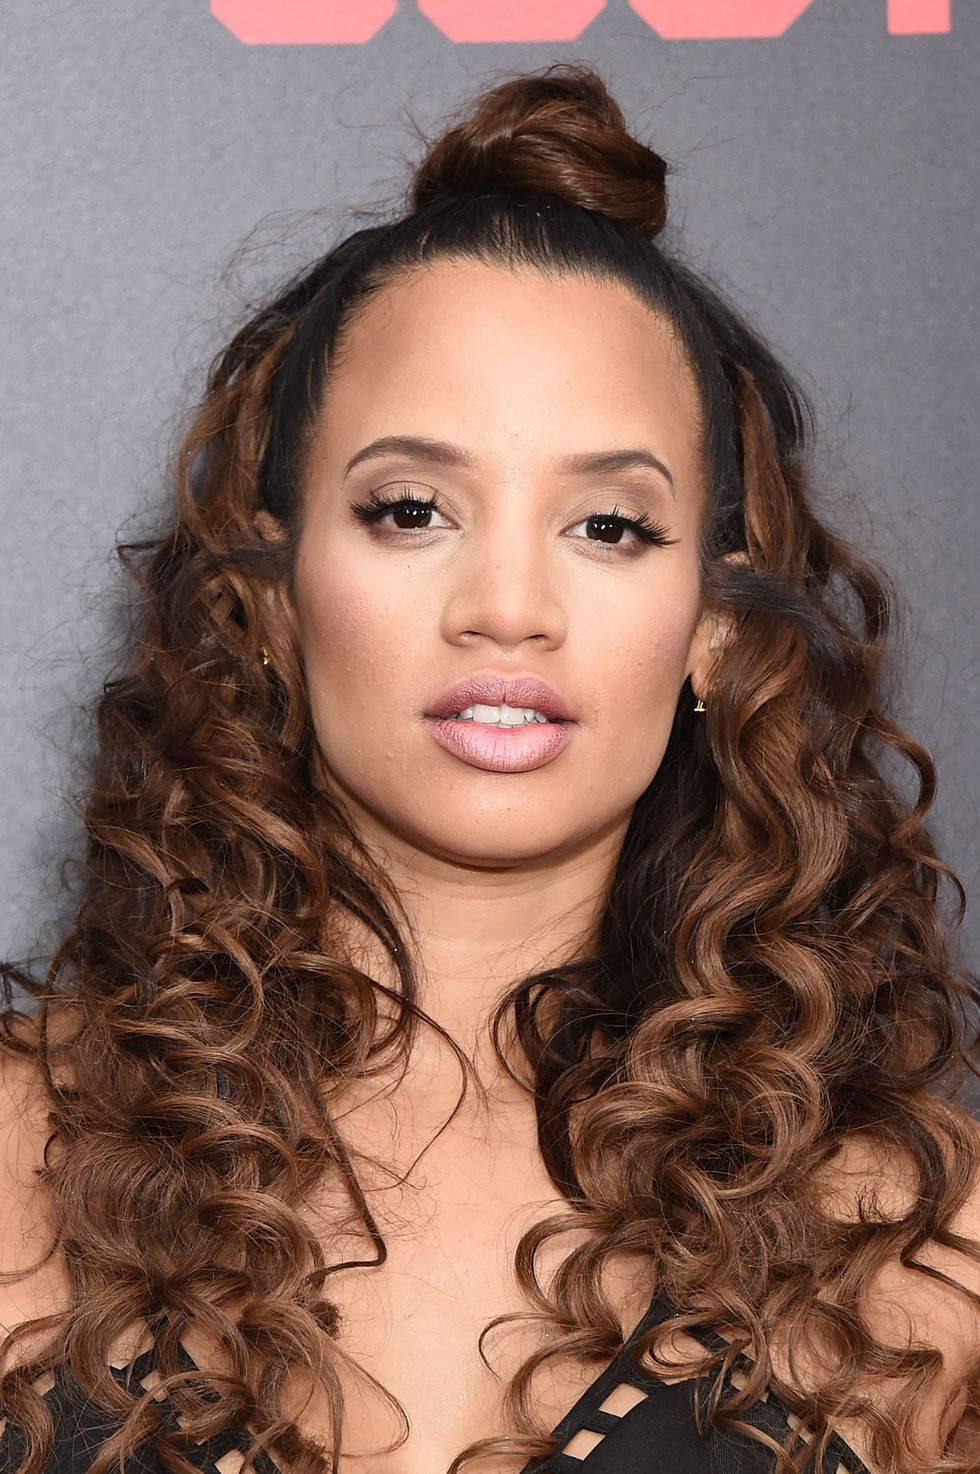 Dascha Polanco with curly hair